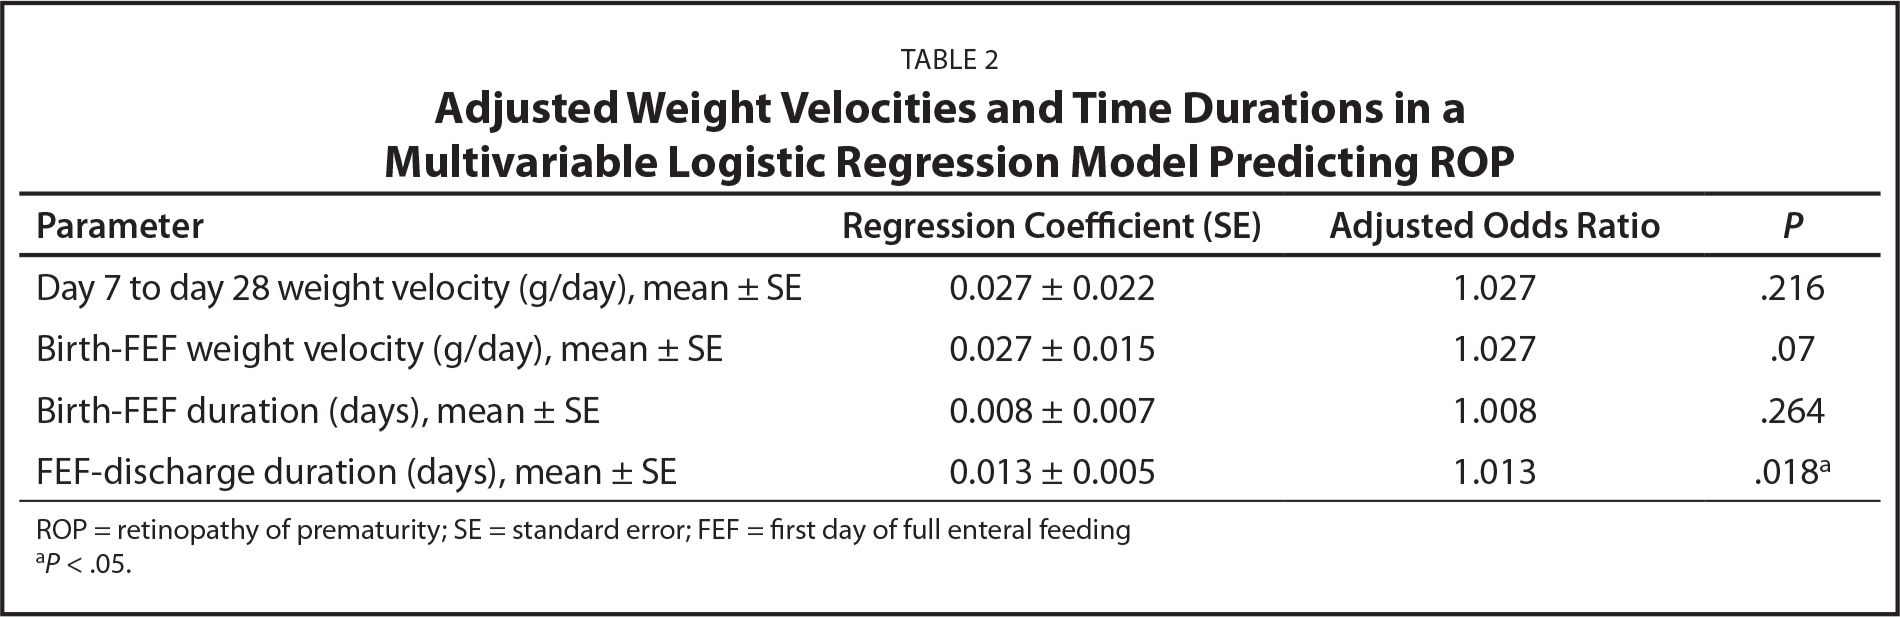 Adjusted Weight Velocities and Time Durations in a Multivariable Logistic Regression Model Predicting ROP